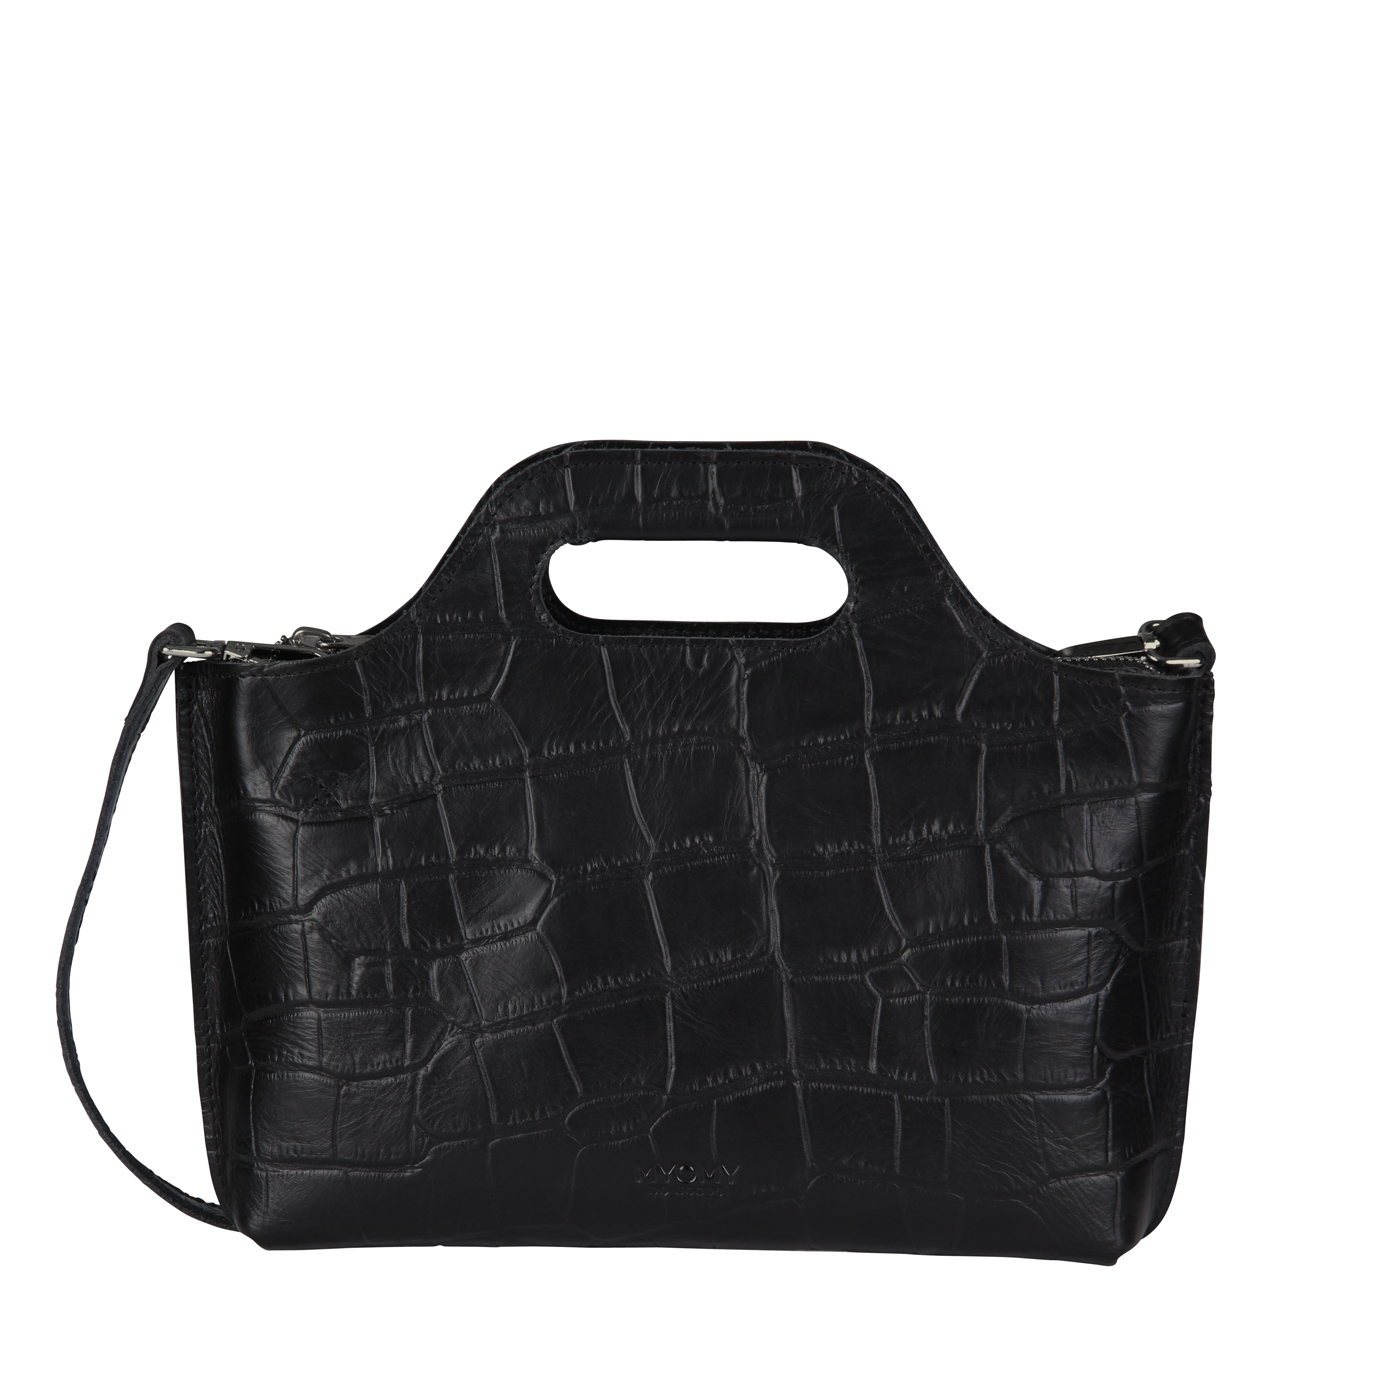 MY CARRY BAG Mini - croco black